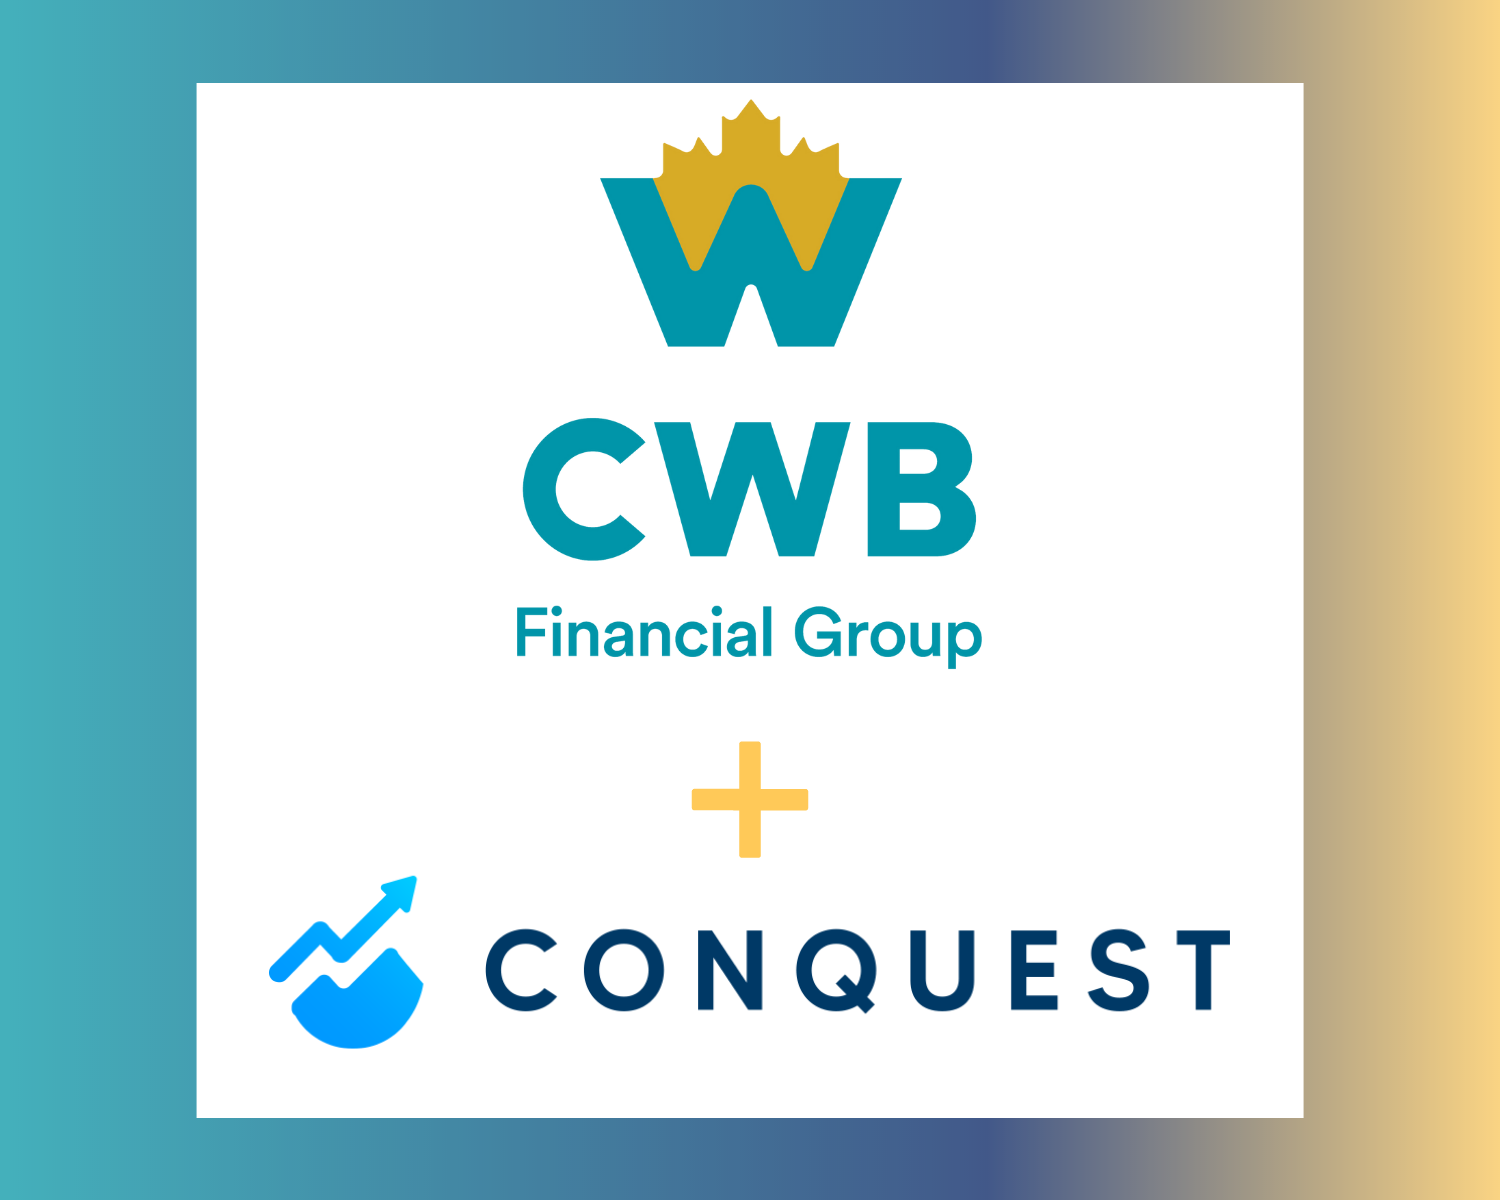 Press Release: CWB becomes first Canadian Schedule 1 bank to partner with Conquest, elevating the wealth experience